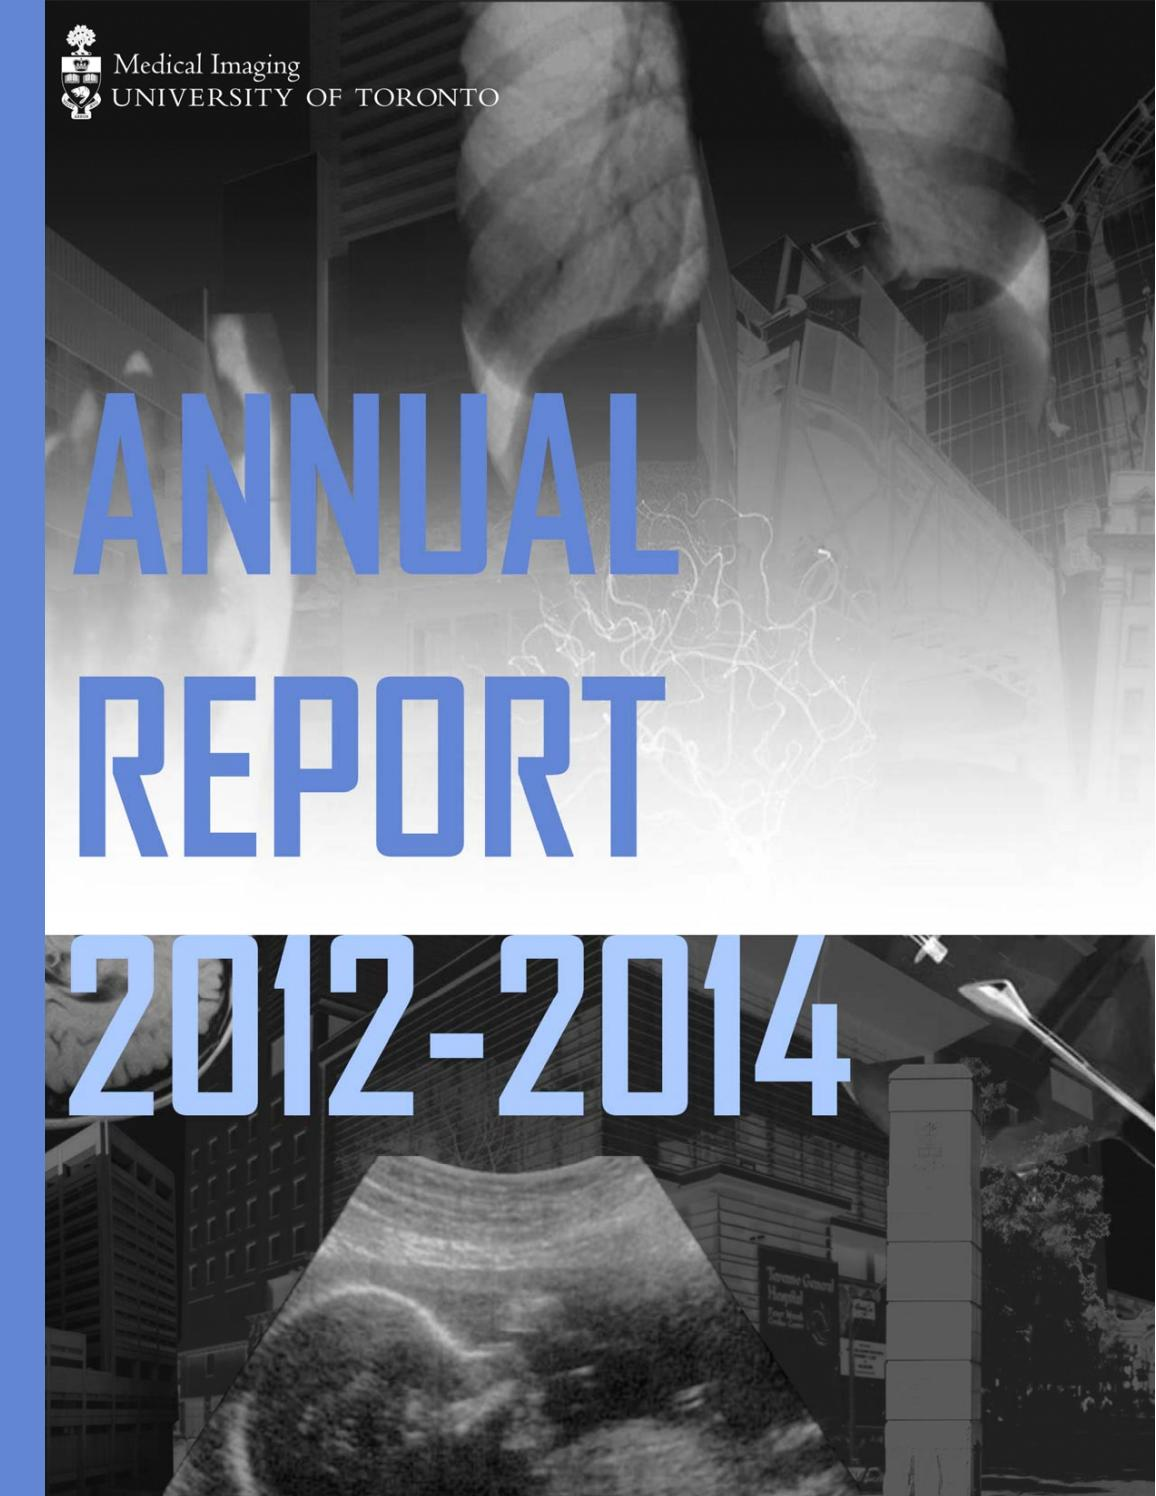 Annual Report 2012-2014 by Department of Medical Imaging, University of  Toronto - issuu e068b11c97be